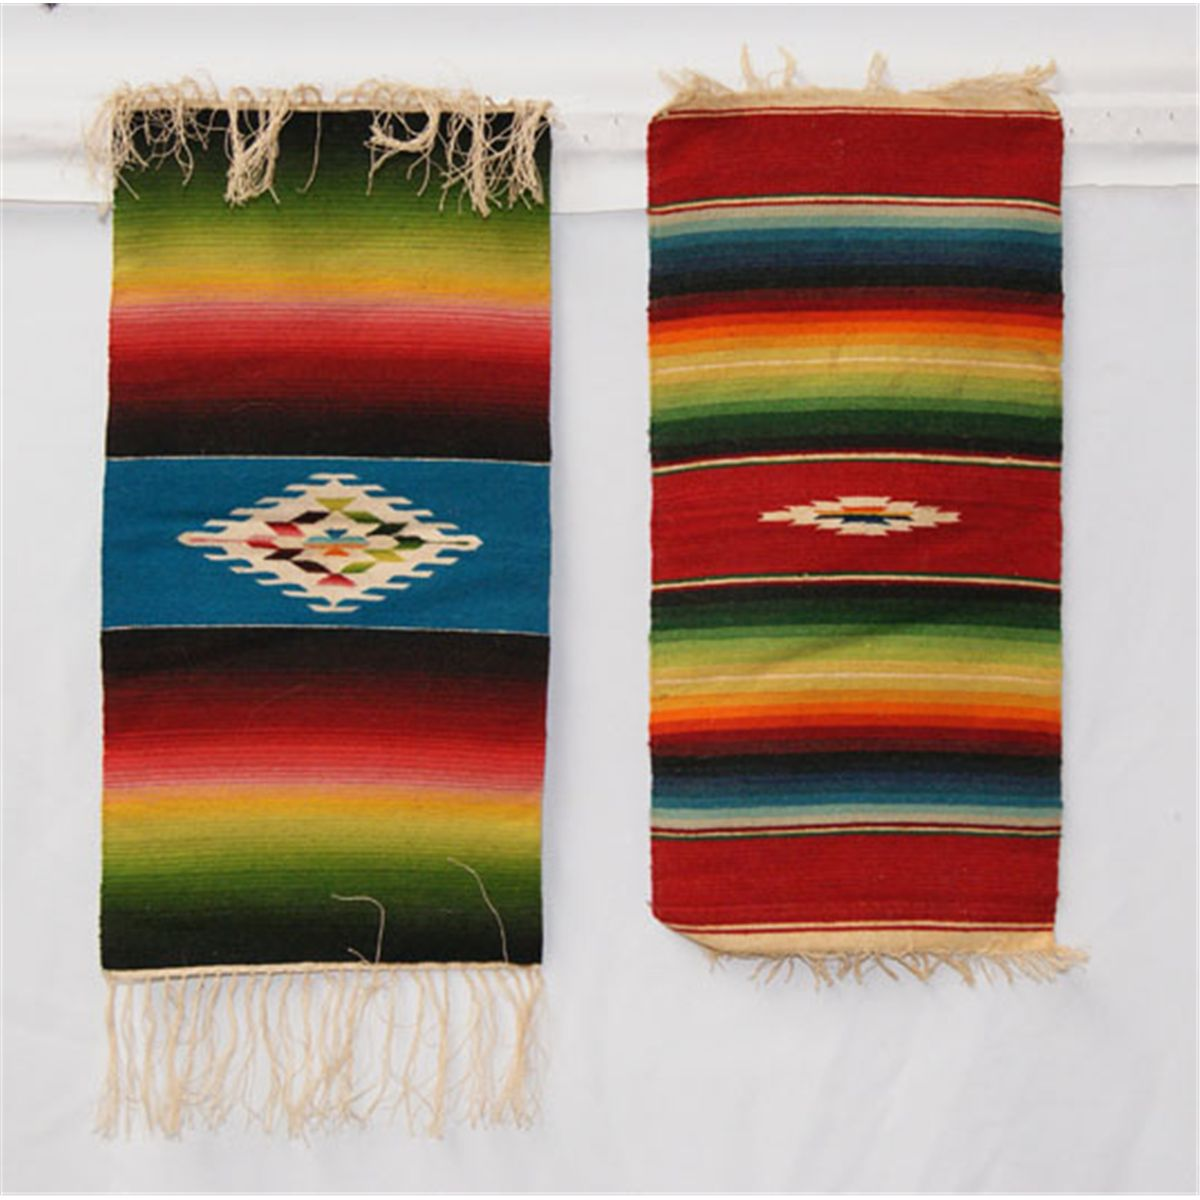 TWO MINIATURE MEXICAN TEXTILES